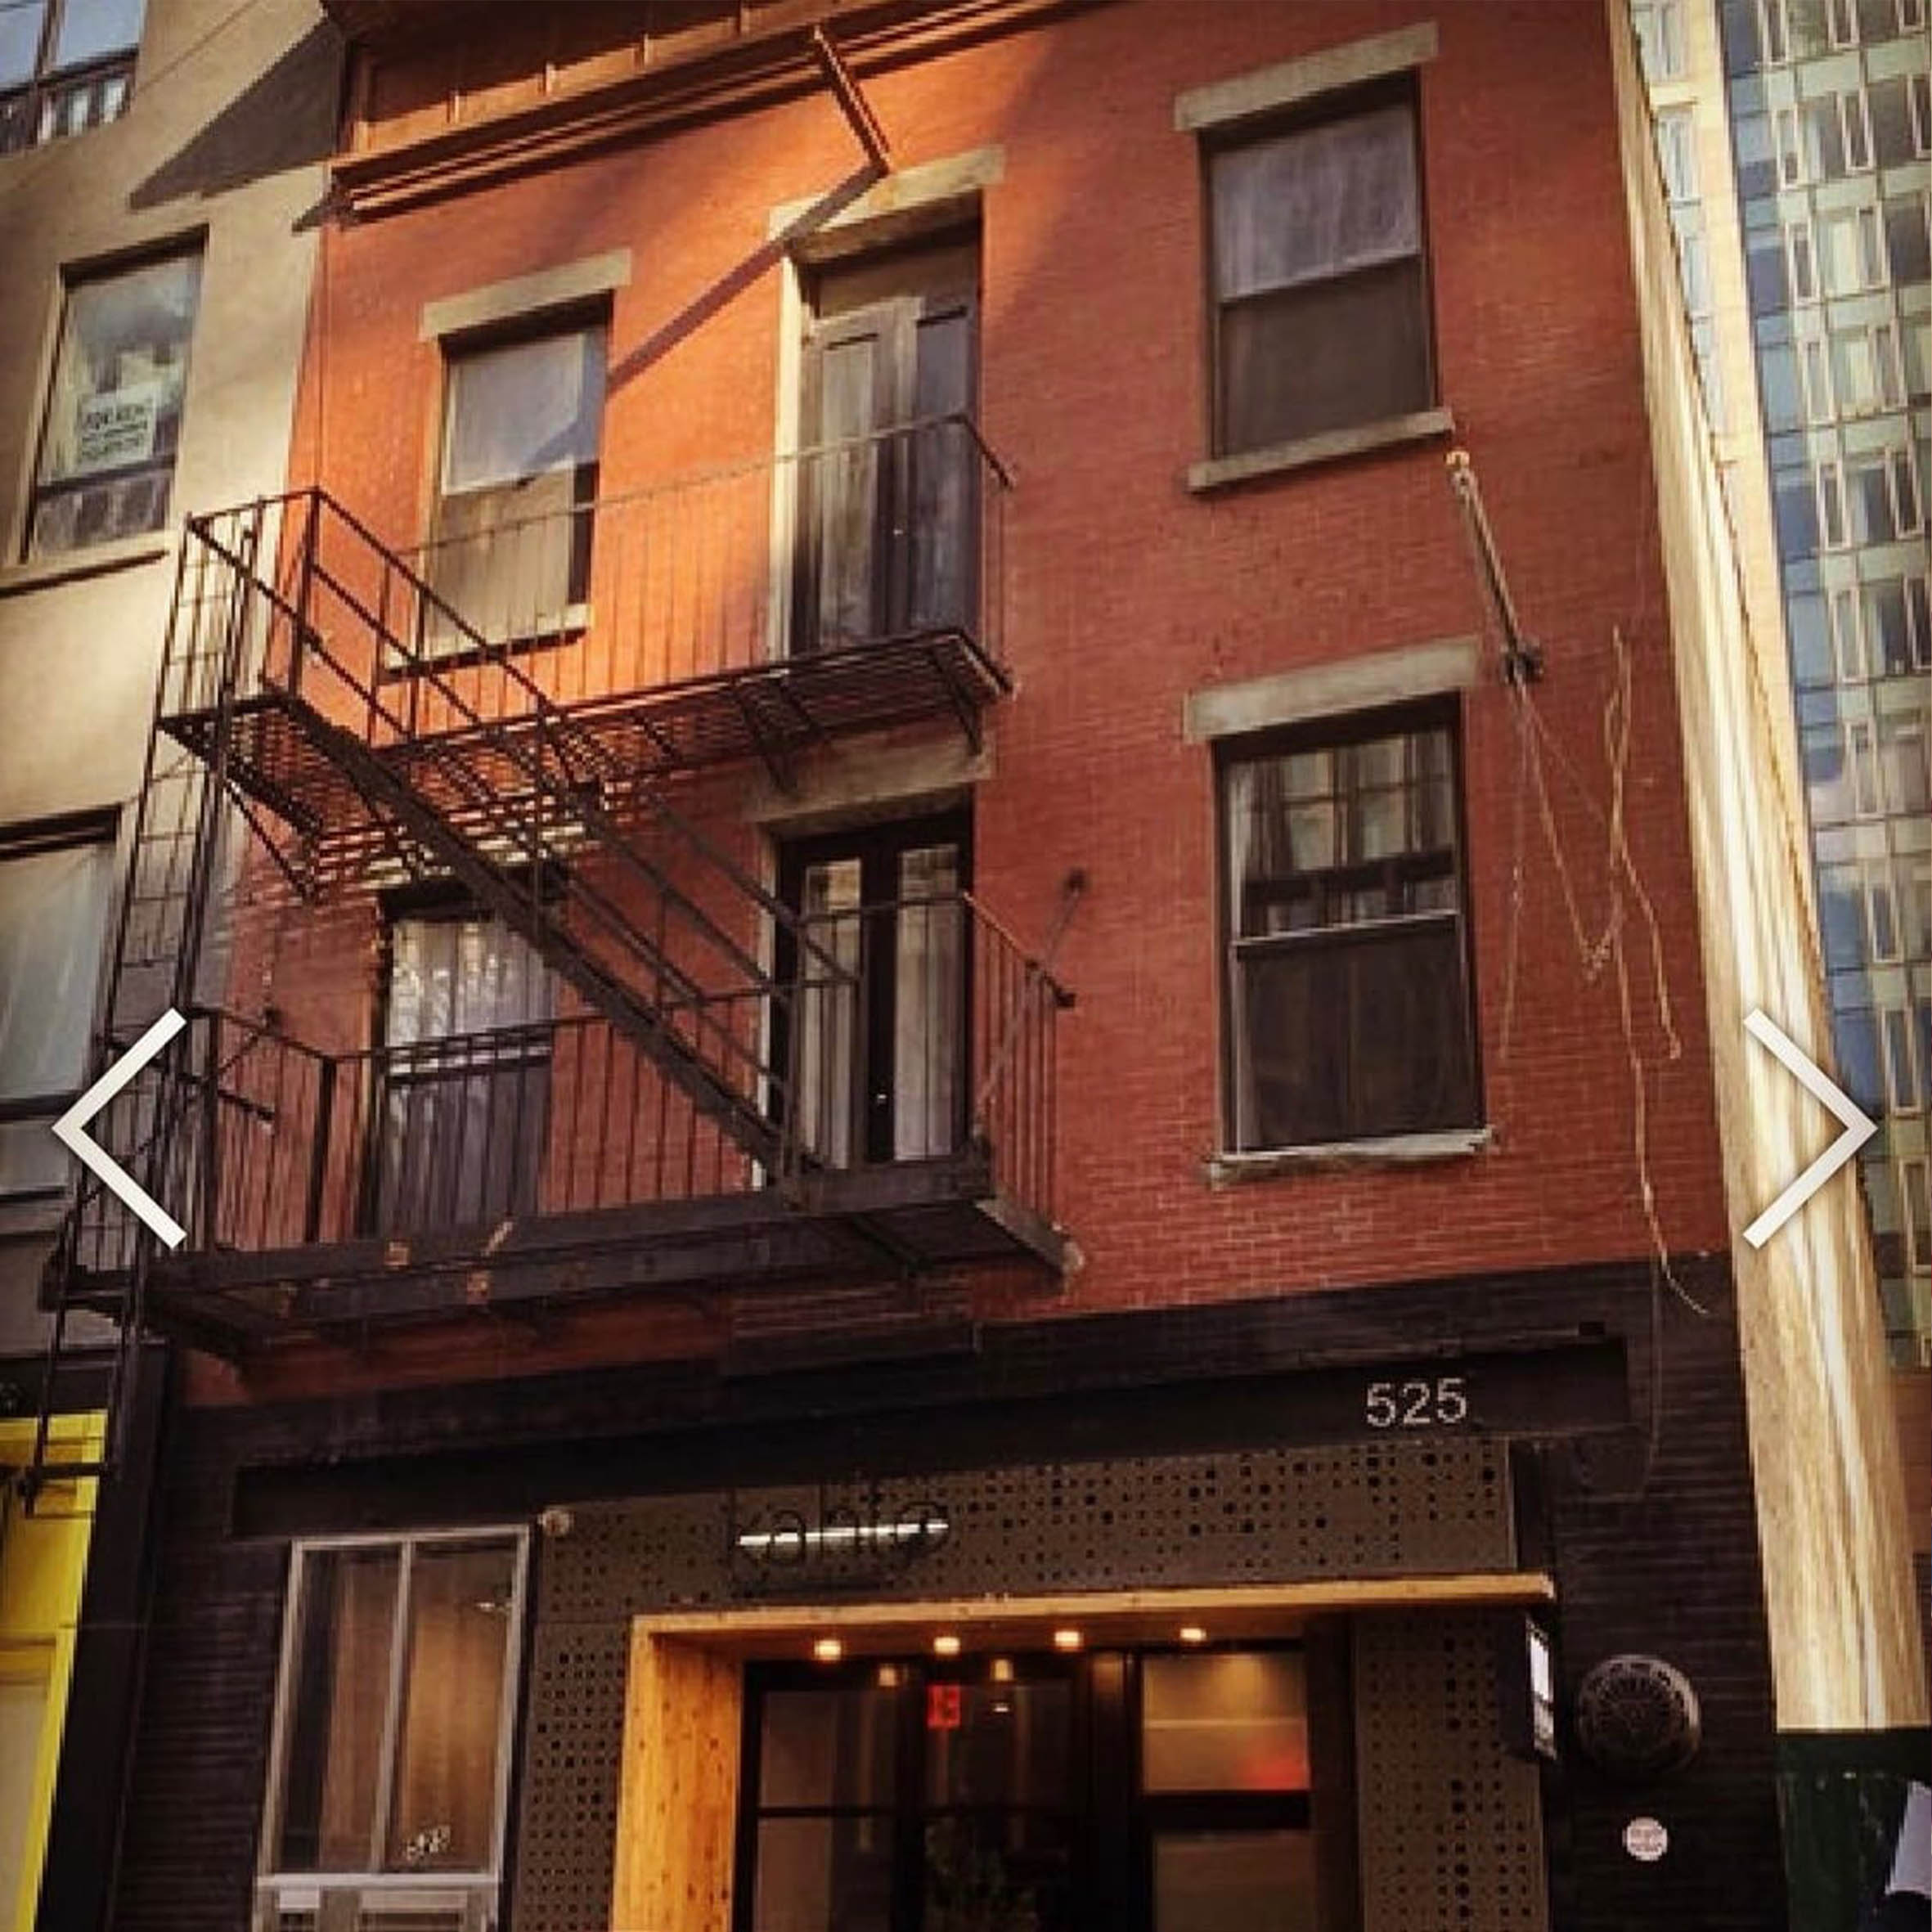 525 west 29 street NYC                                                                                                                                   Building for SALE                                      Info@hqcnyc.com